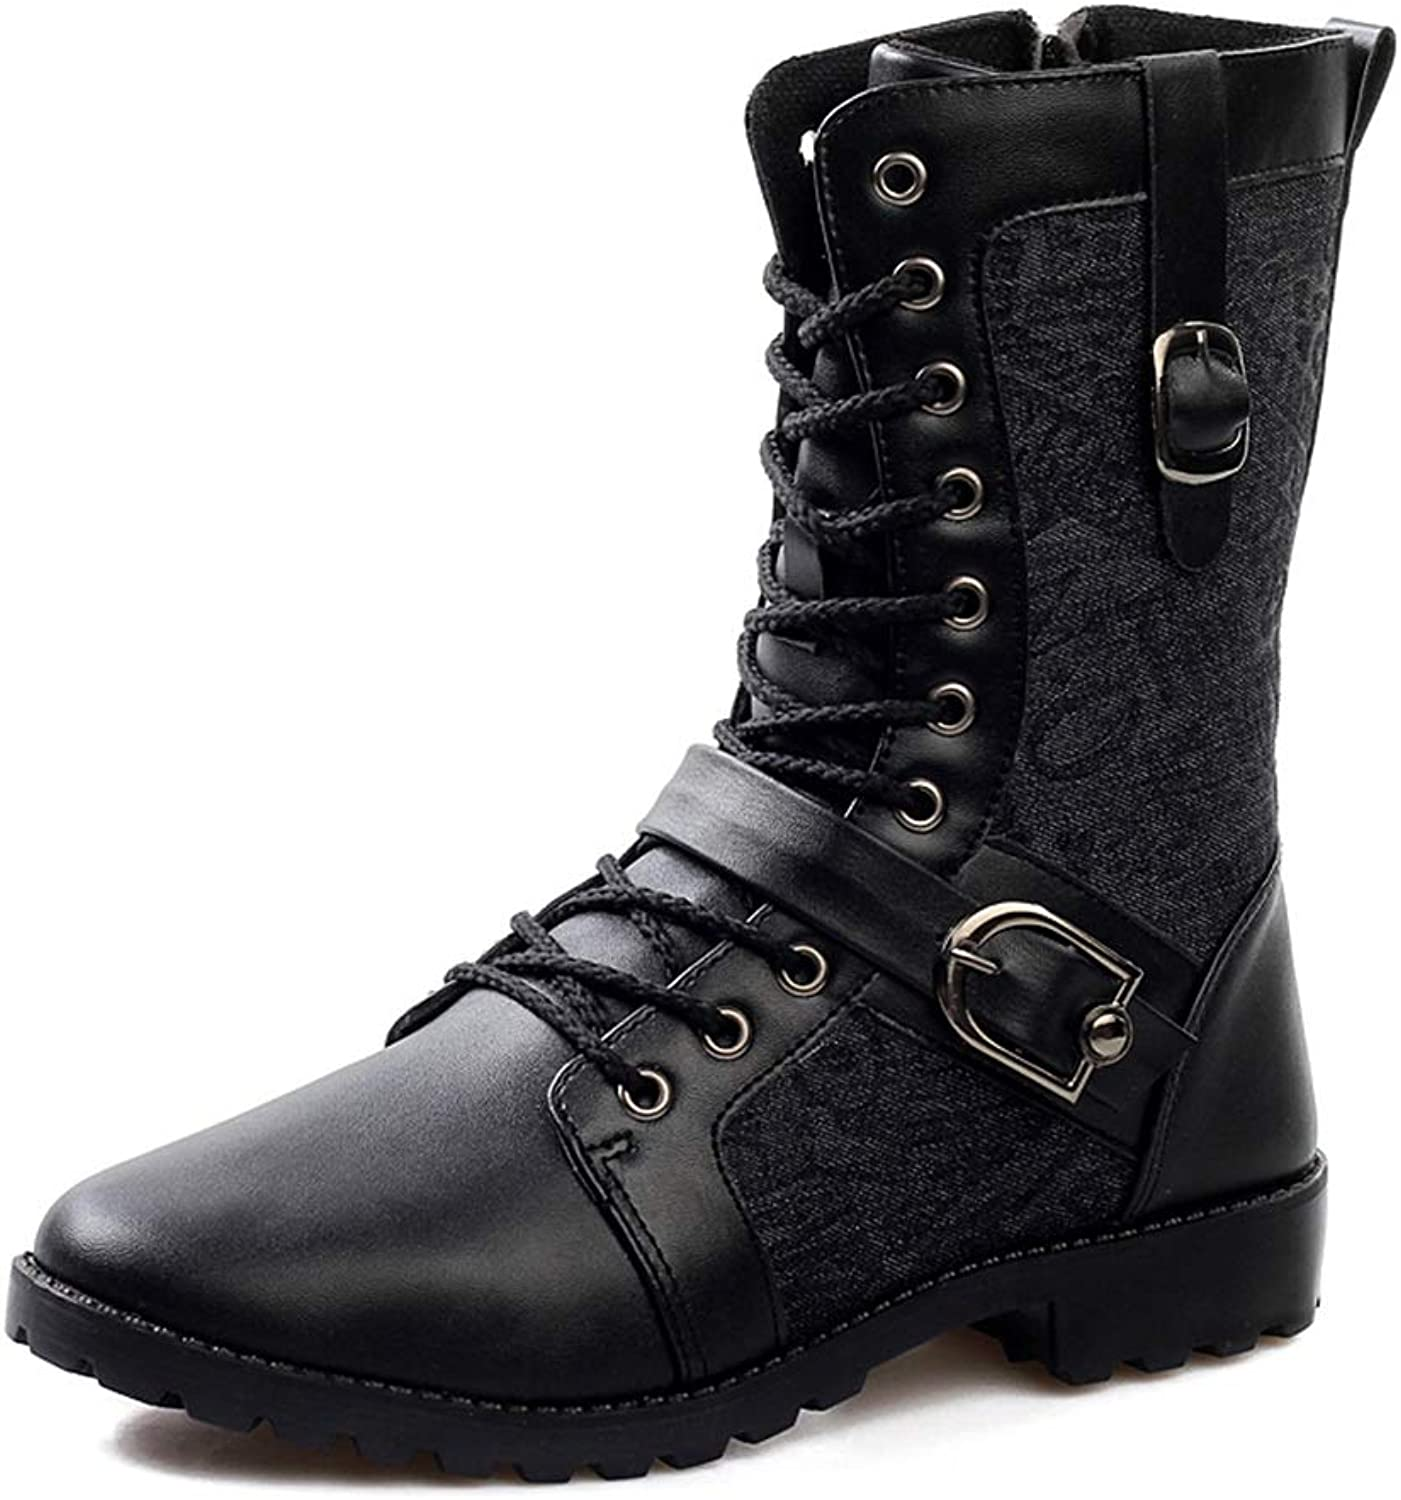 Easy Go Shopping Men's Mid-Calf Boots Faux Fleece Inside Metal Lacing Embossed Canvas Fabric with Metal Belt Buckle Decoration Side Zipper shoes Cricket shoes